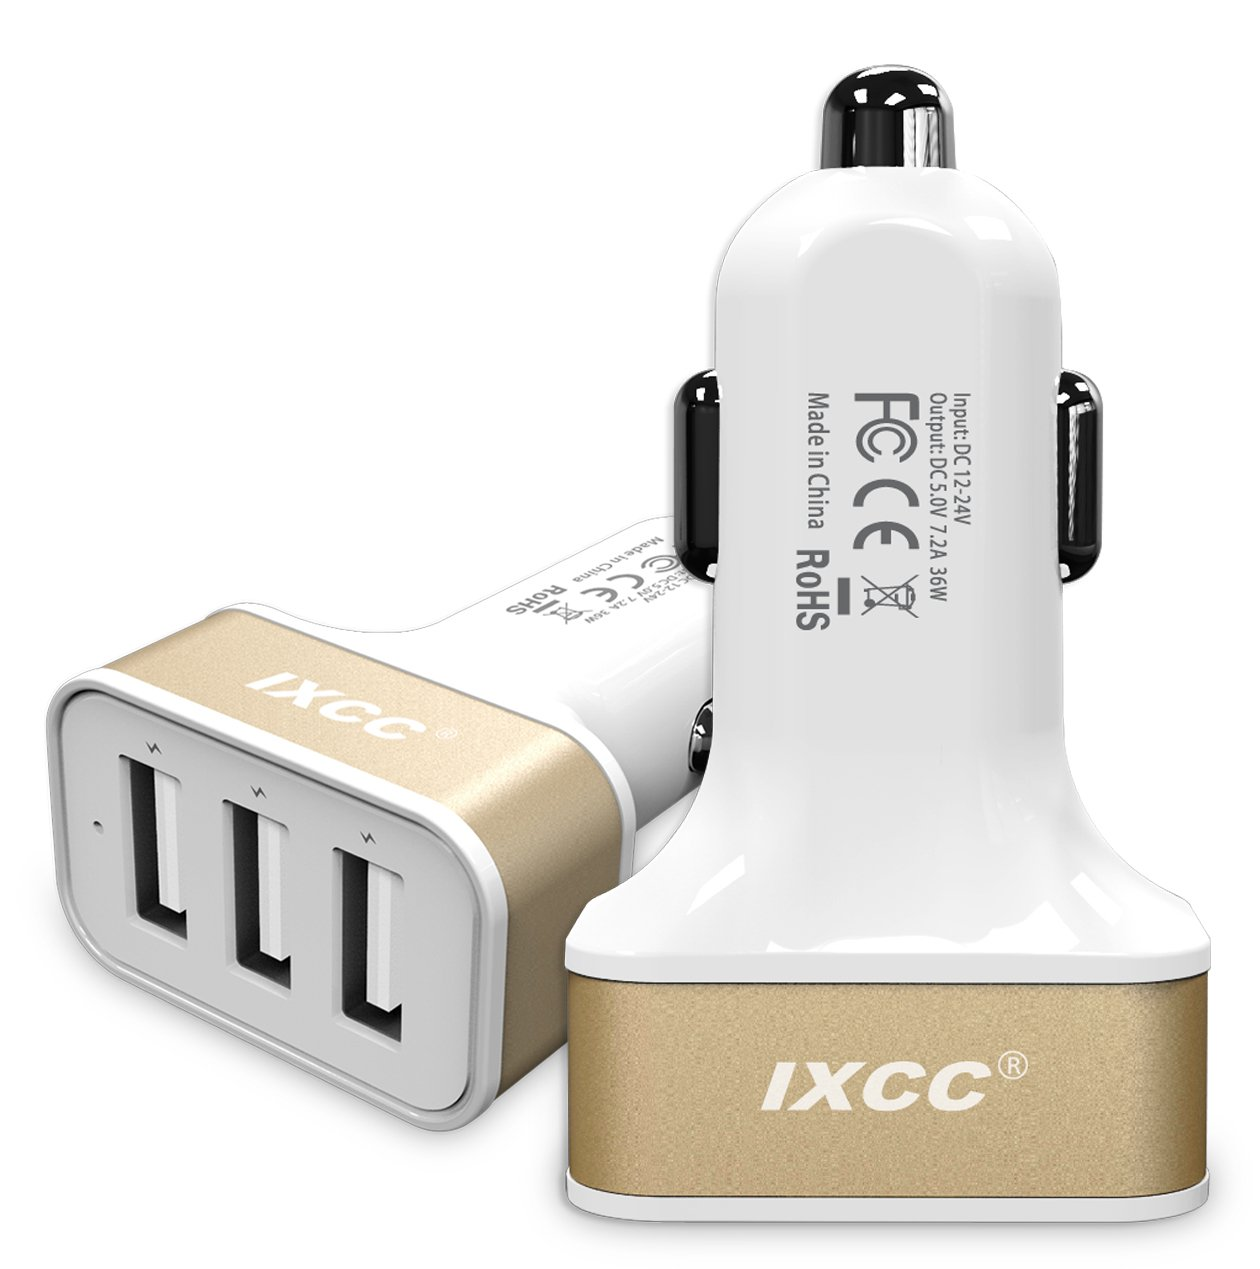 Dual USB Car Charger - 1. 0 - Puertos Universal, Smart Power Supply para iPods, iPhones, teléfonos celulares